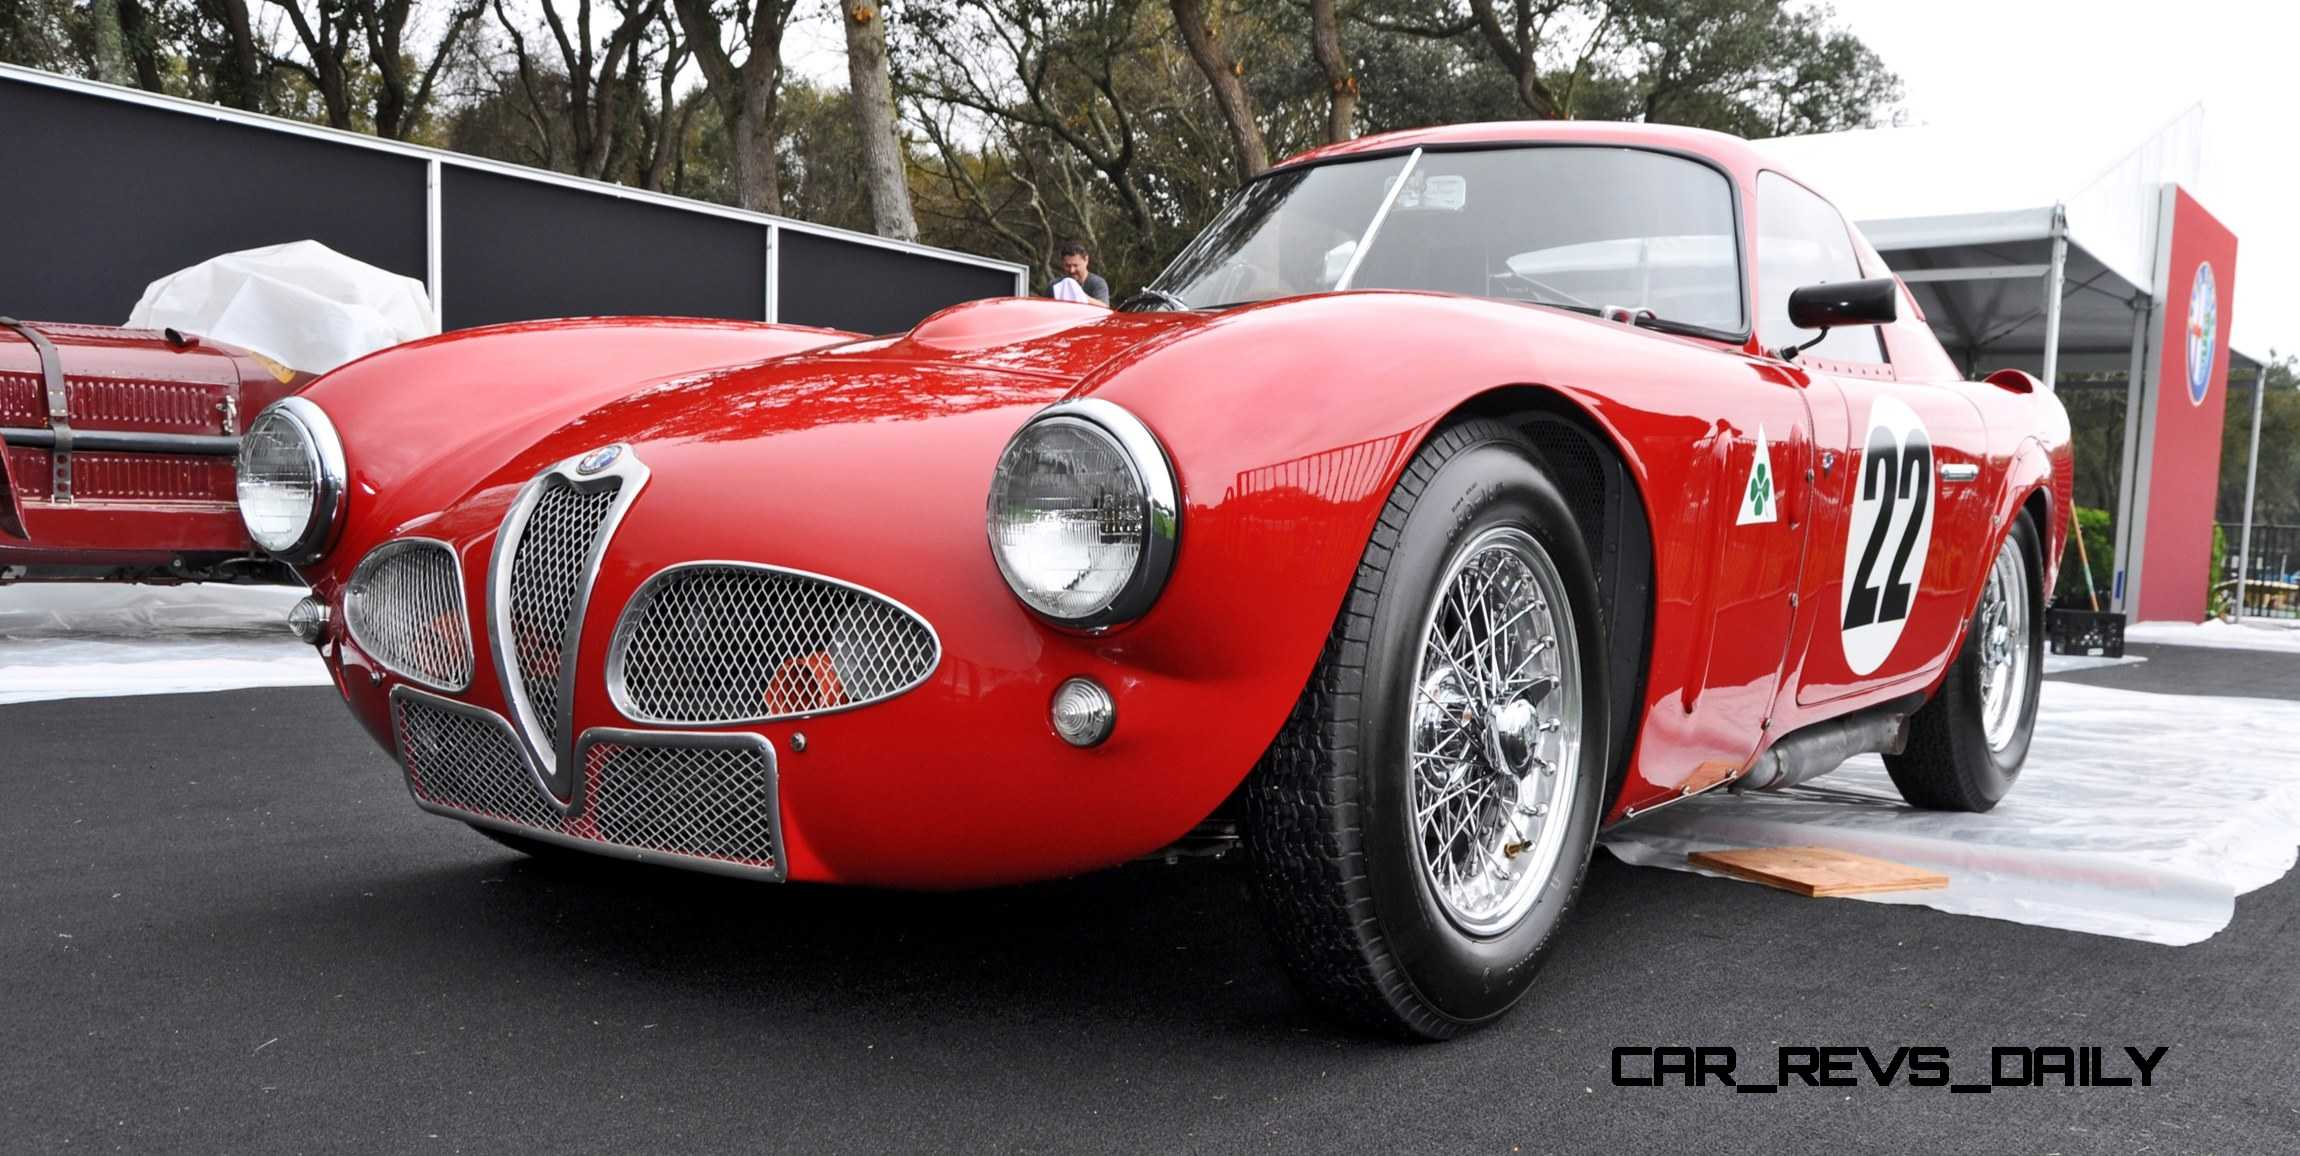 1953 alfa romeo 6c 3000cm shows origin of 2015 4c nose design 10